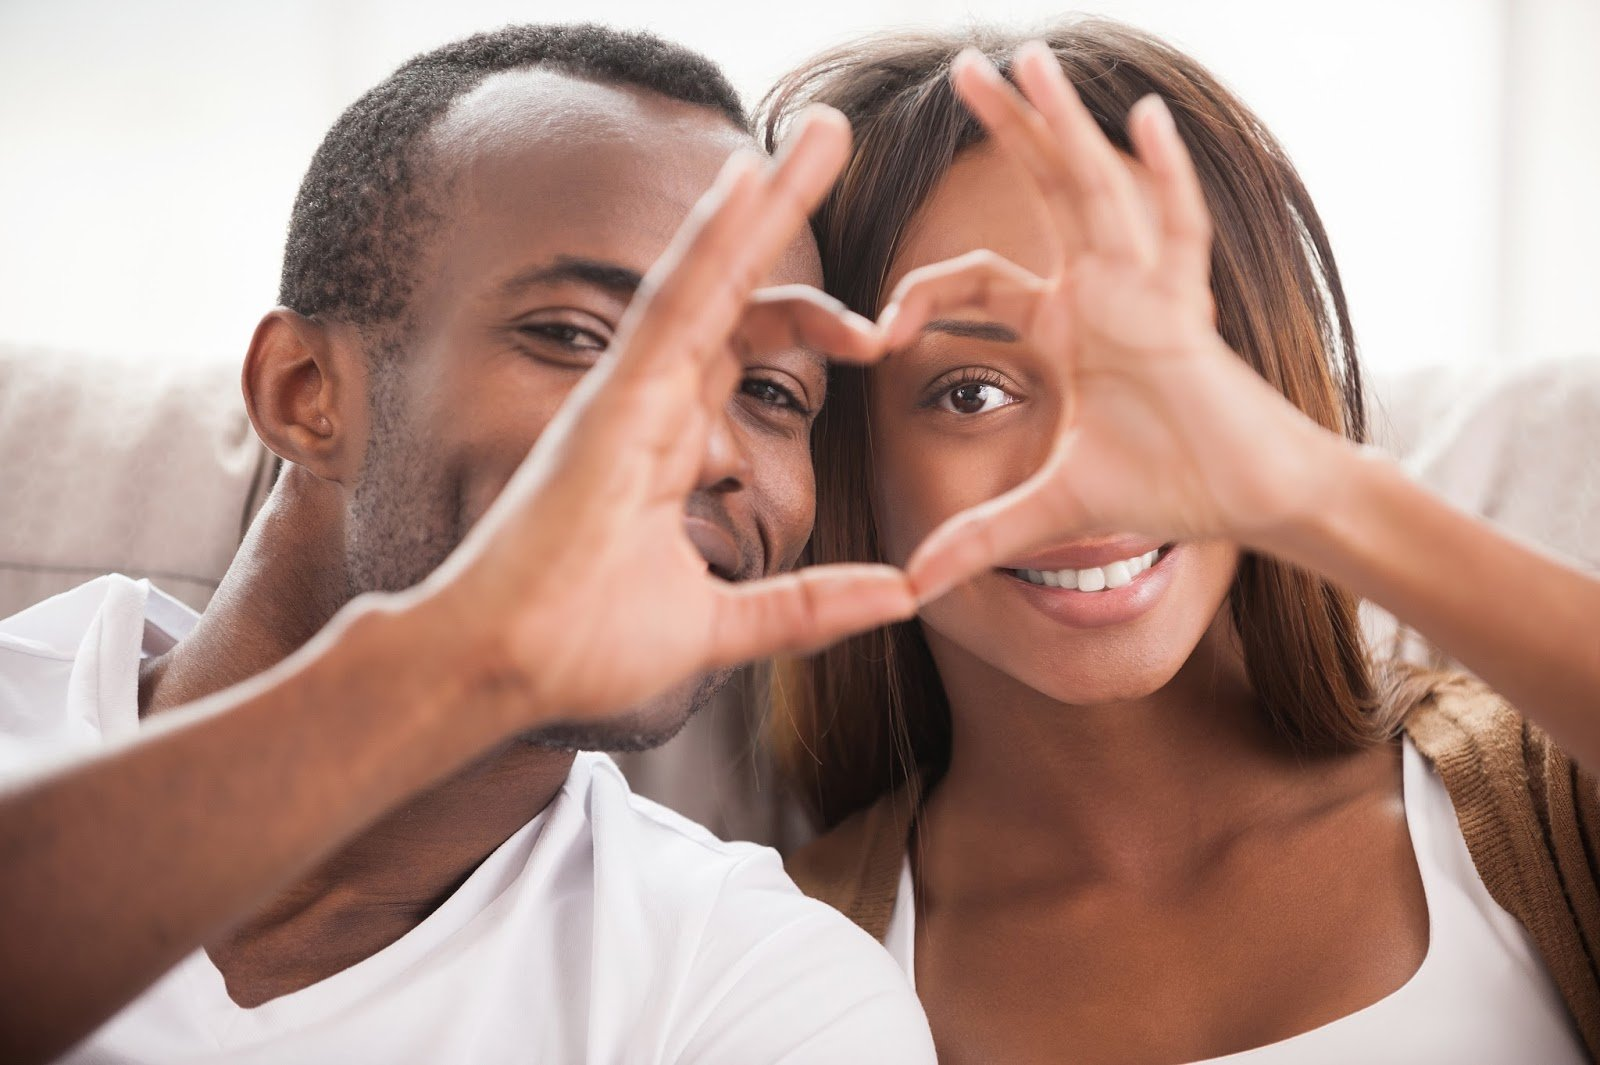 Relationship Cliches: Does Your Man Have To Be Your Best Friend?